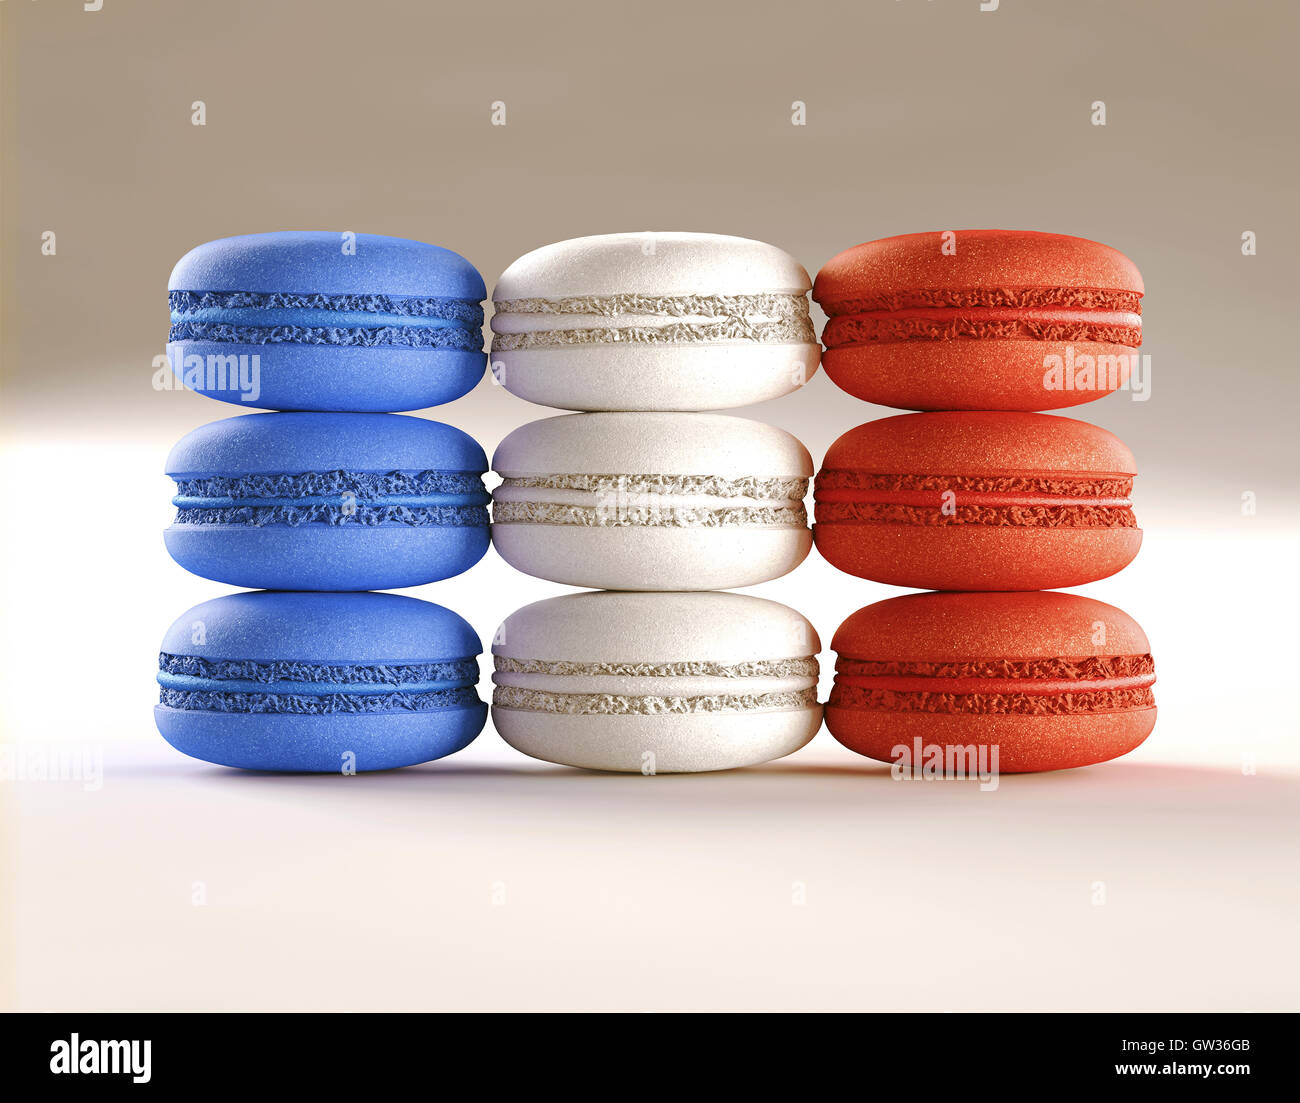 Blue, white and red macaroons. - Stock Image